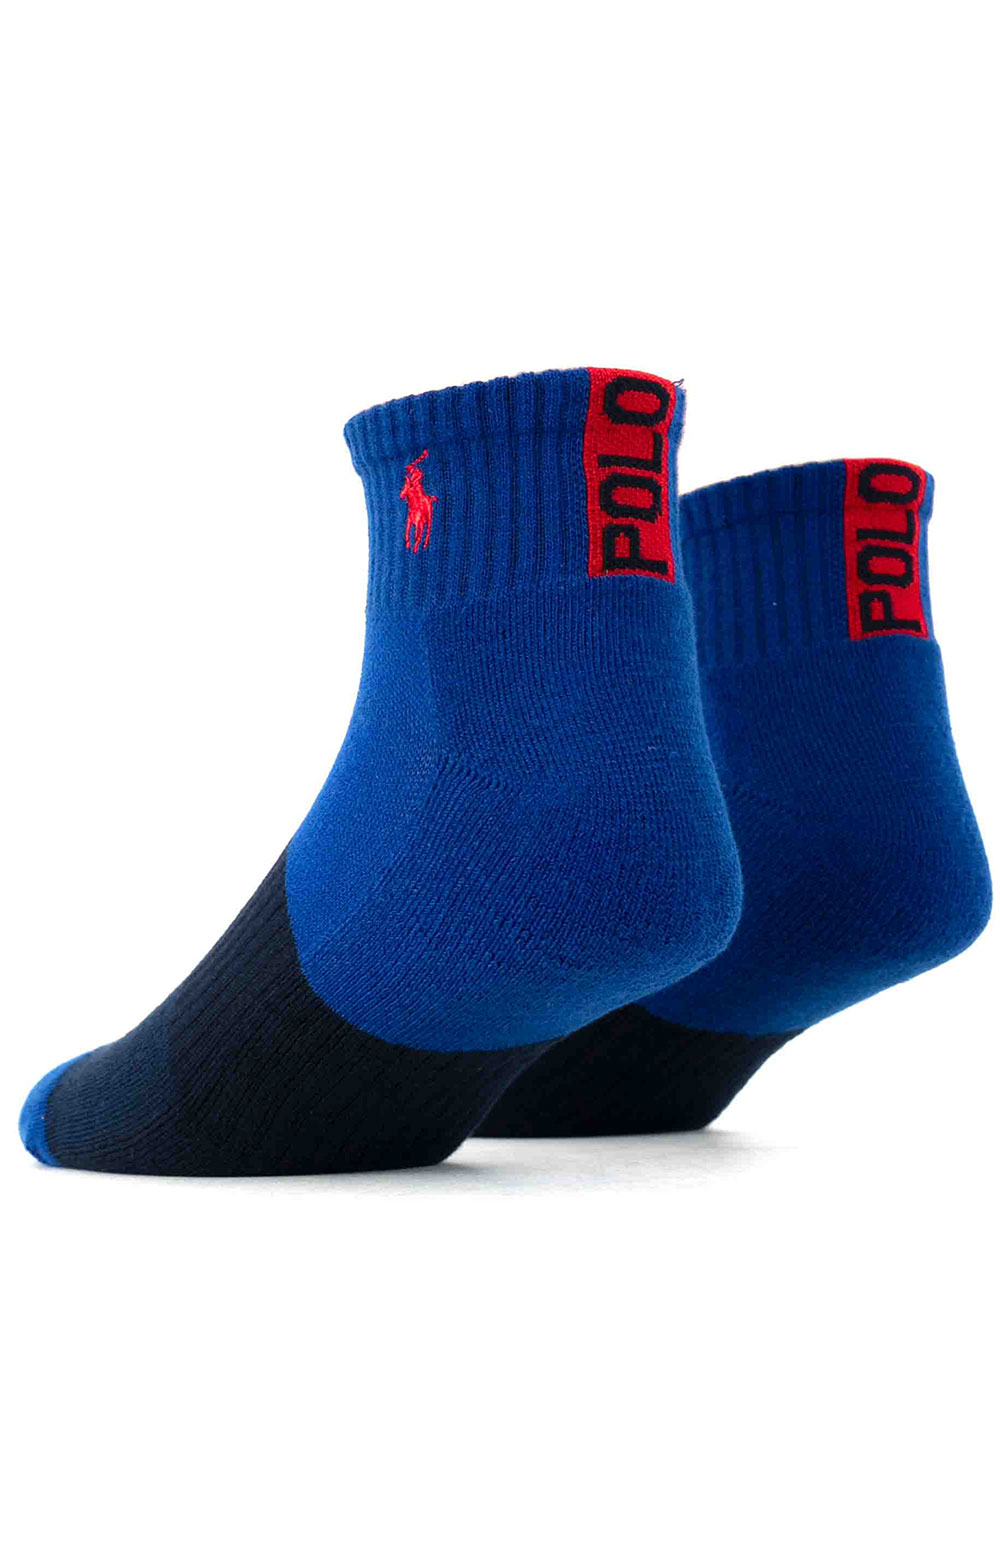 Colorblock Cushioned Quarter Socks - 6 Pack 15